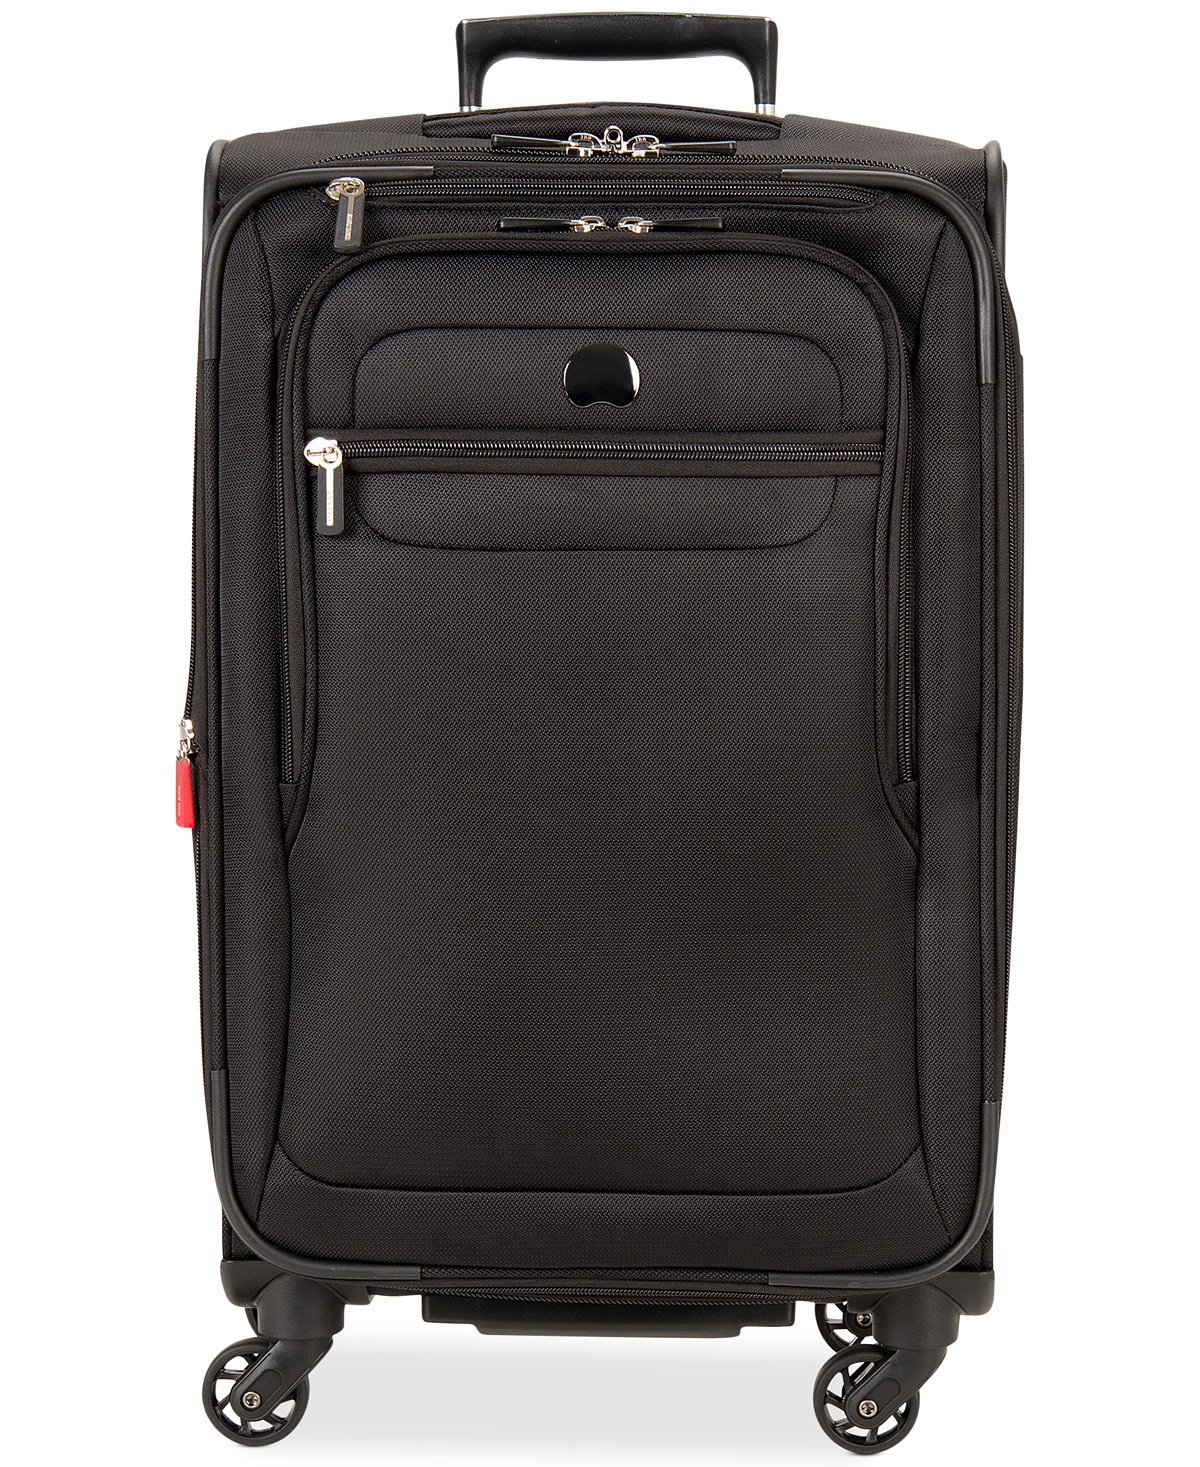 Helium Sky 2.0 Carry-on Exp. Spinner Trolley